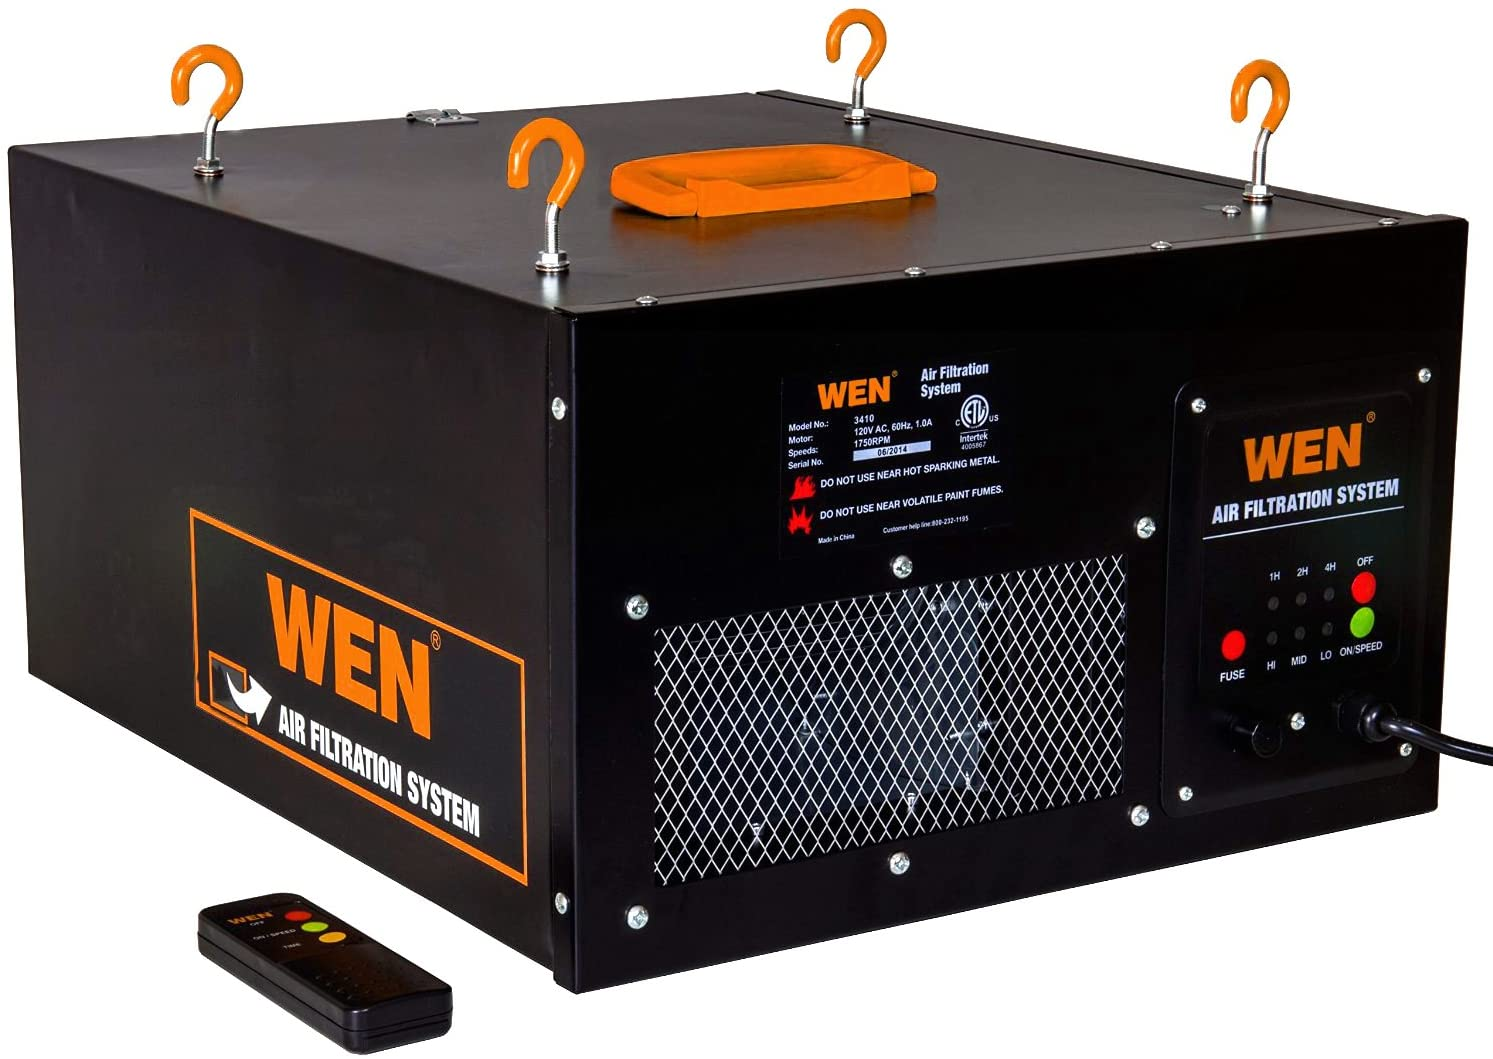 Wen 3410 3 Speed Remote Controlled Air Filtration System 300 350 400 Cfm Amazon Com